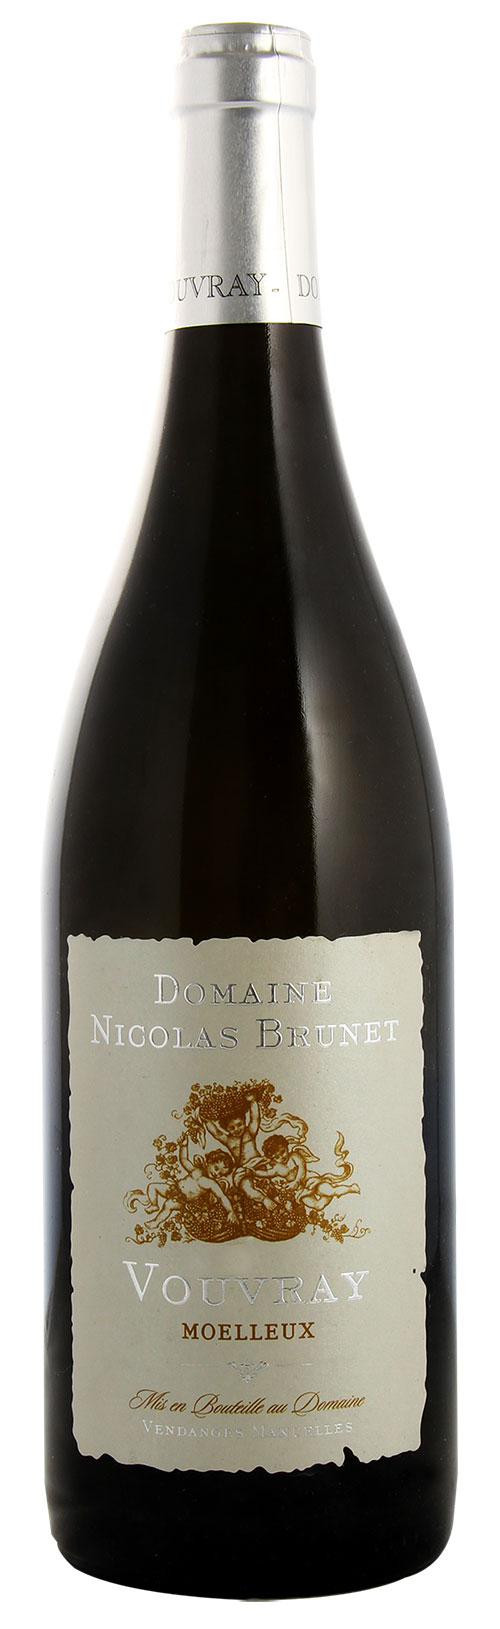 VOUVRAY MOELLEUX AOC TRANQUILLE 2014 CUVEE NINA